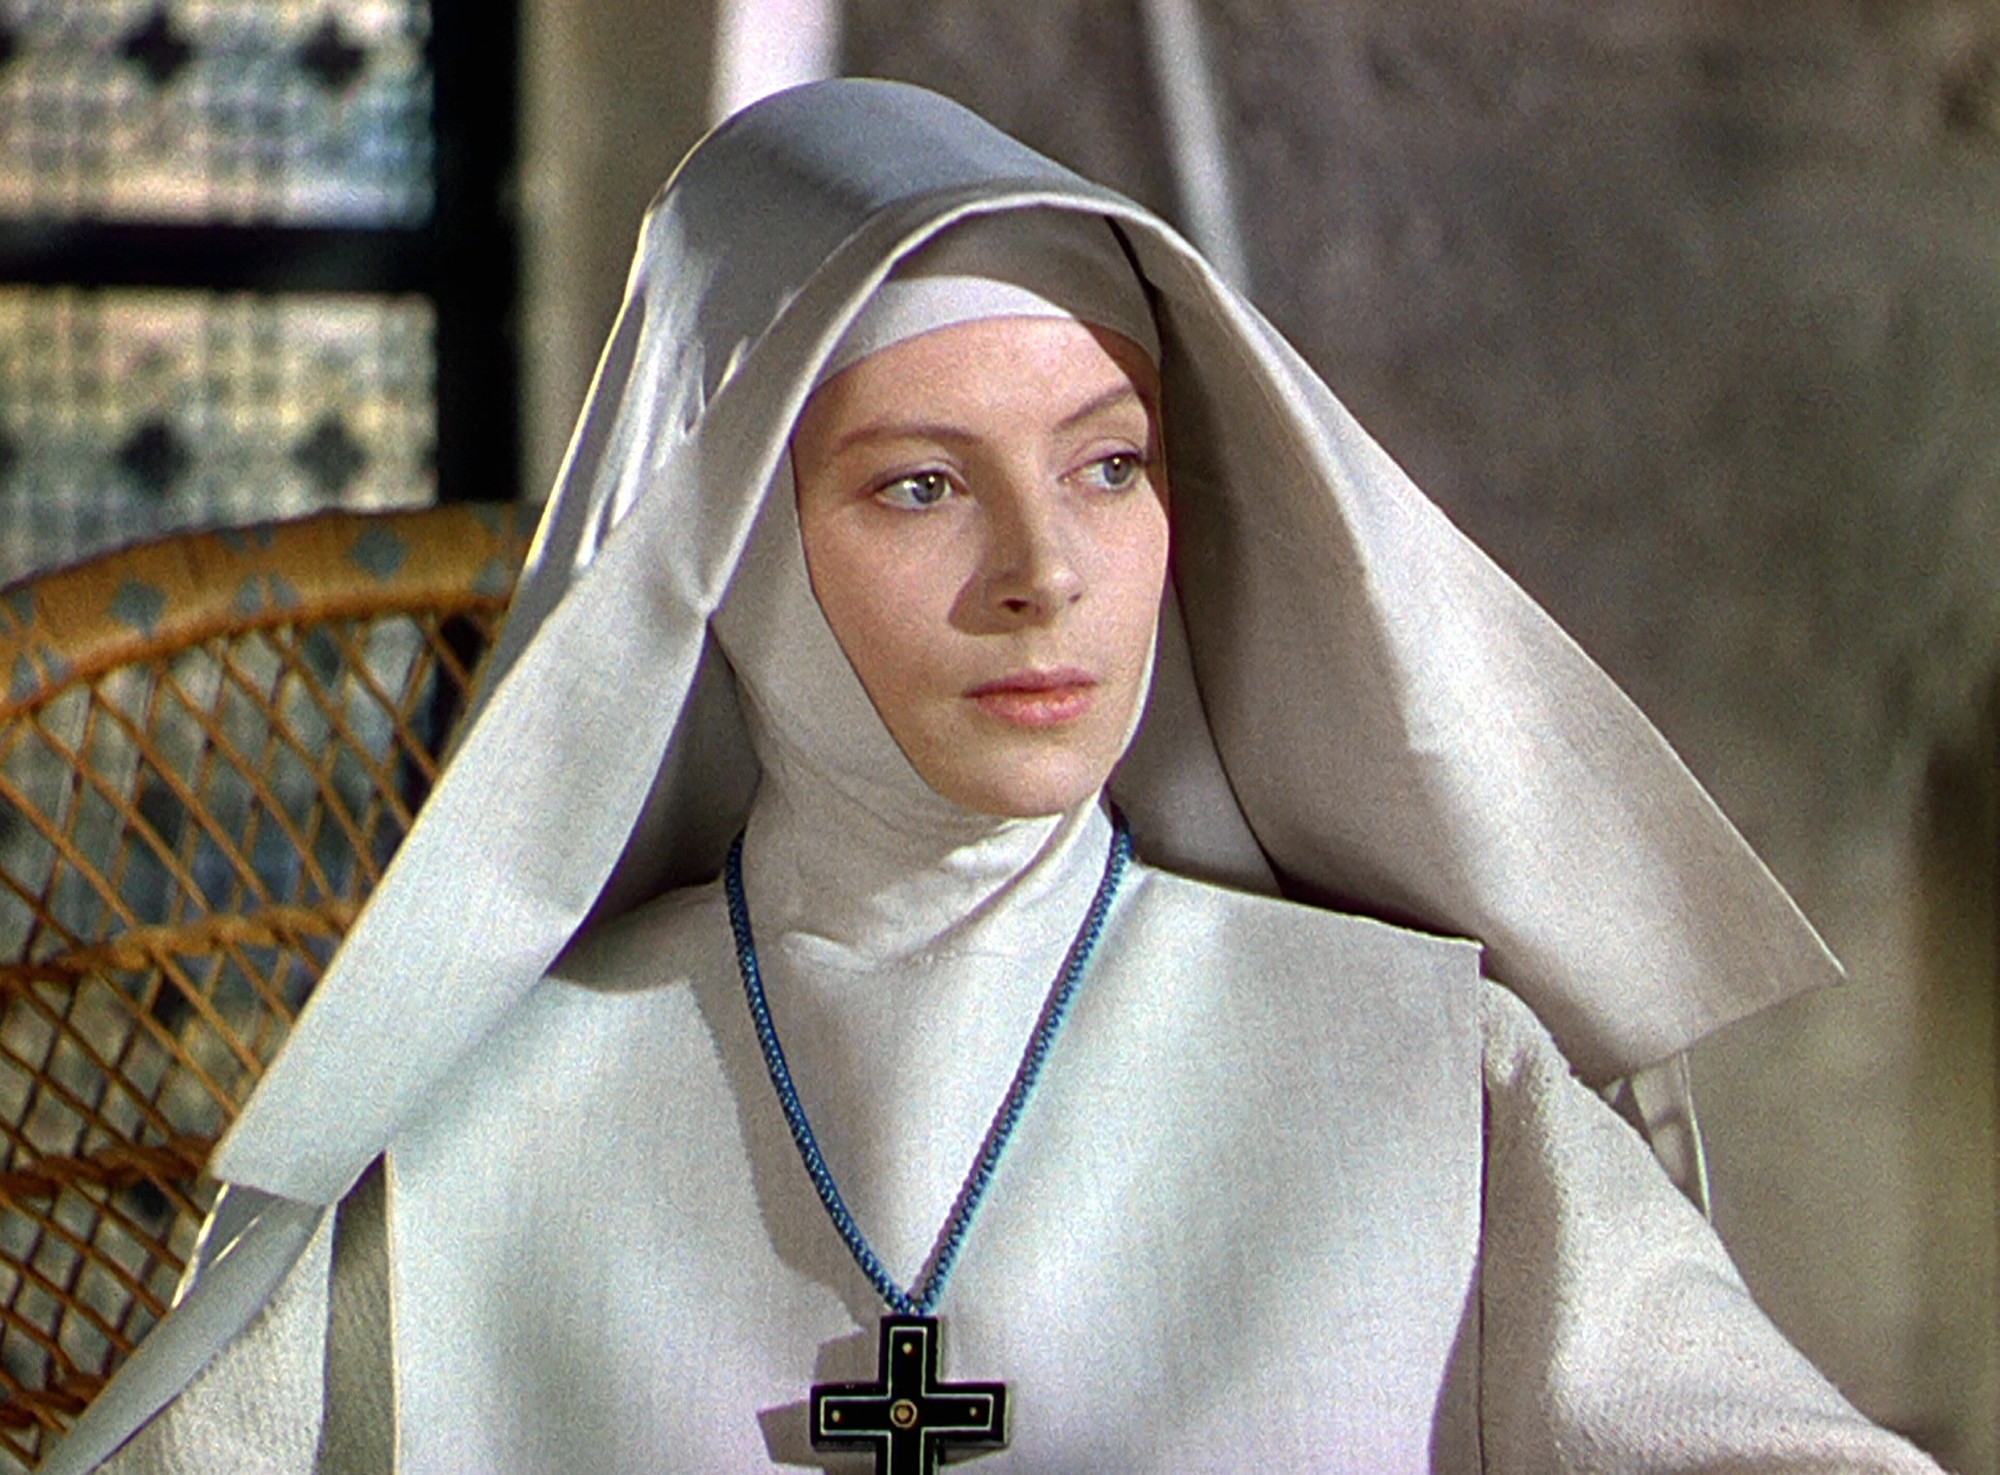 Black Narcissus. 1947. Great Britain. Directed by Michael Powell and Emeric Pressburger. Courtesy ITV/Park Circus